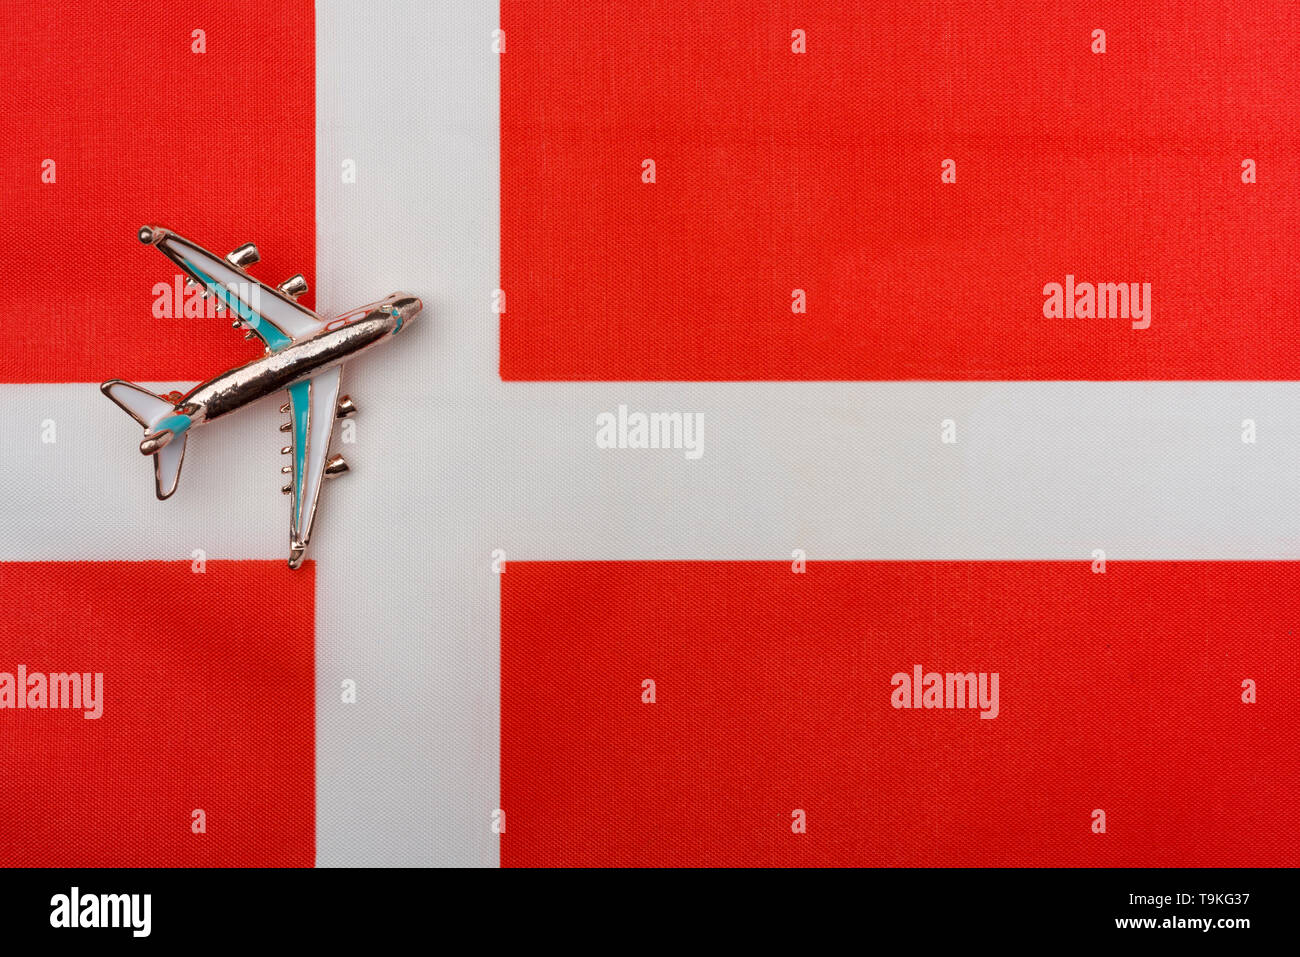 Plane over Denmark flag travel concept. Toy plane on the flag in the background. - Stock Image